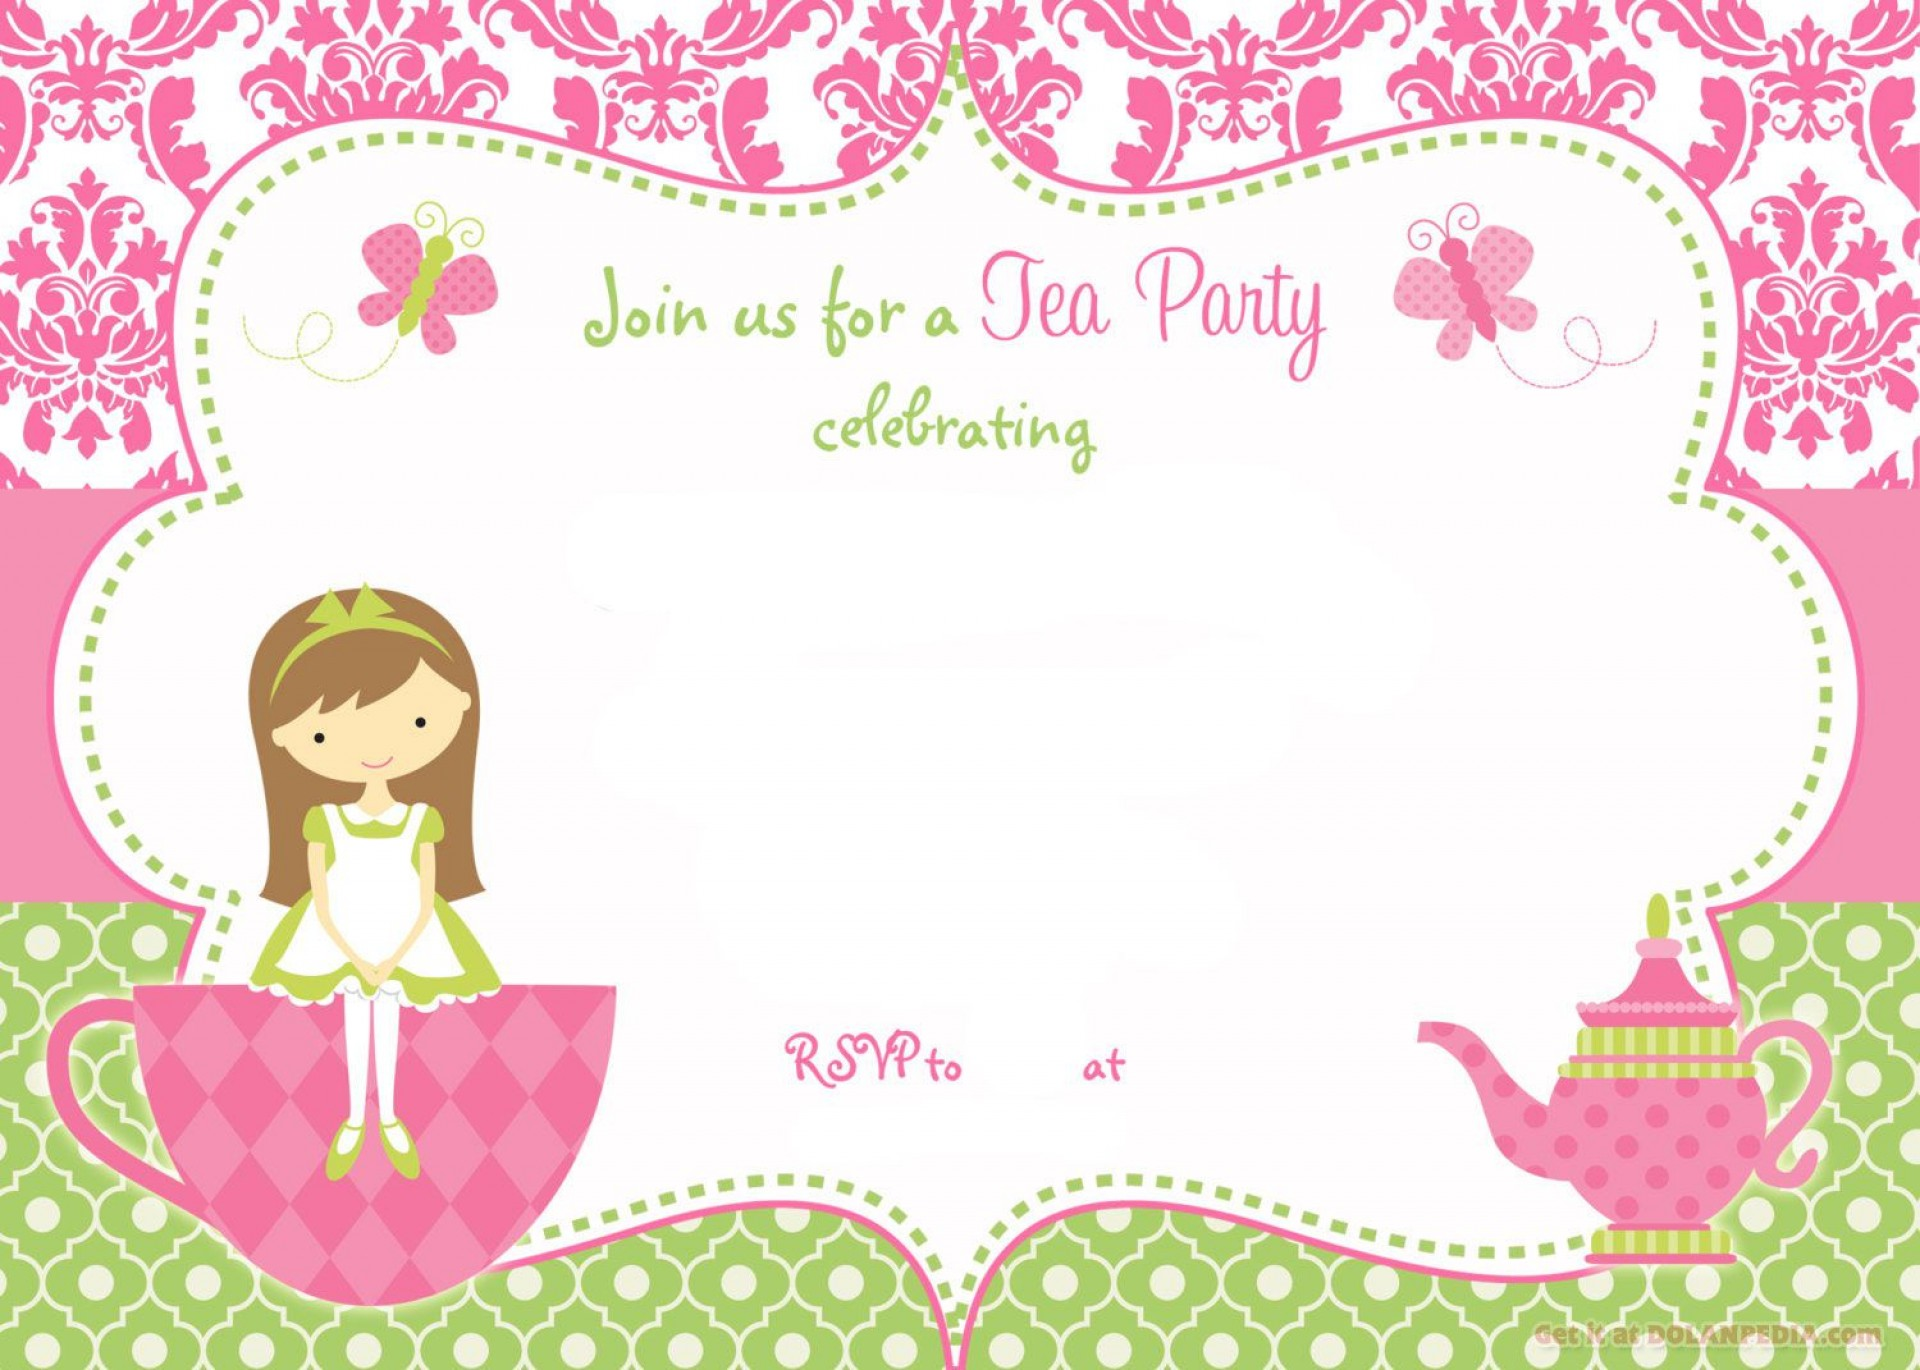 007 Incredible Tea Party Invitation Template Image  Templates High Free Download Bridal Shower1920